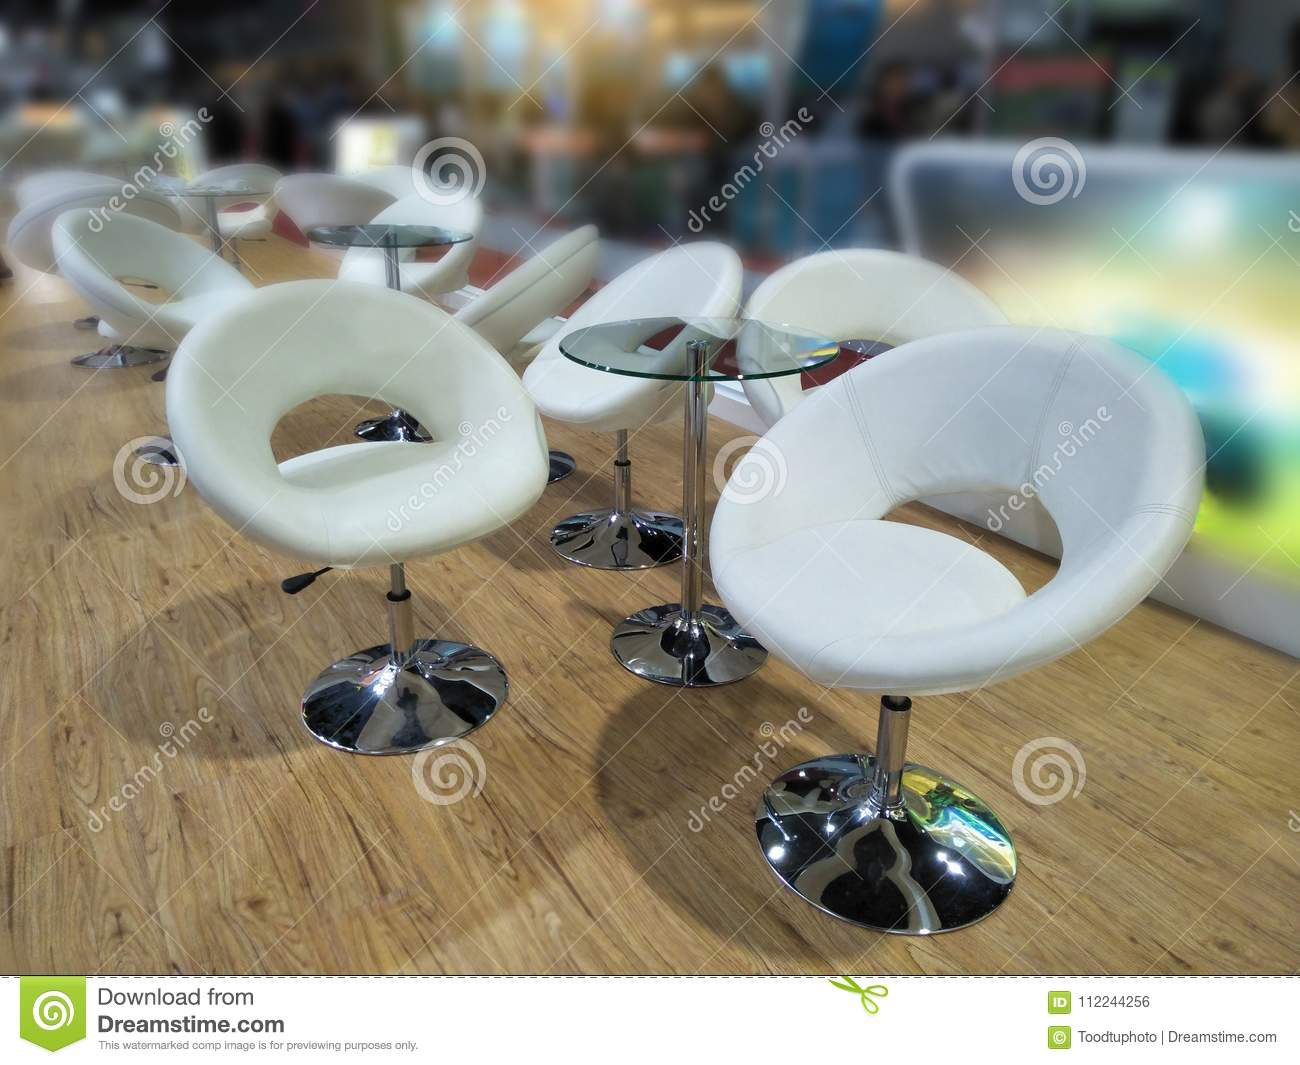 Interior With Design And Decorative Luxury And Modern Glass Tables And White Chairs In Restaurant Stock Photo Image Of Dinner Furniture 112244256